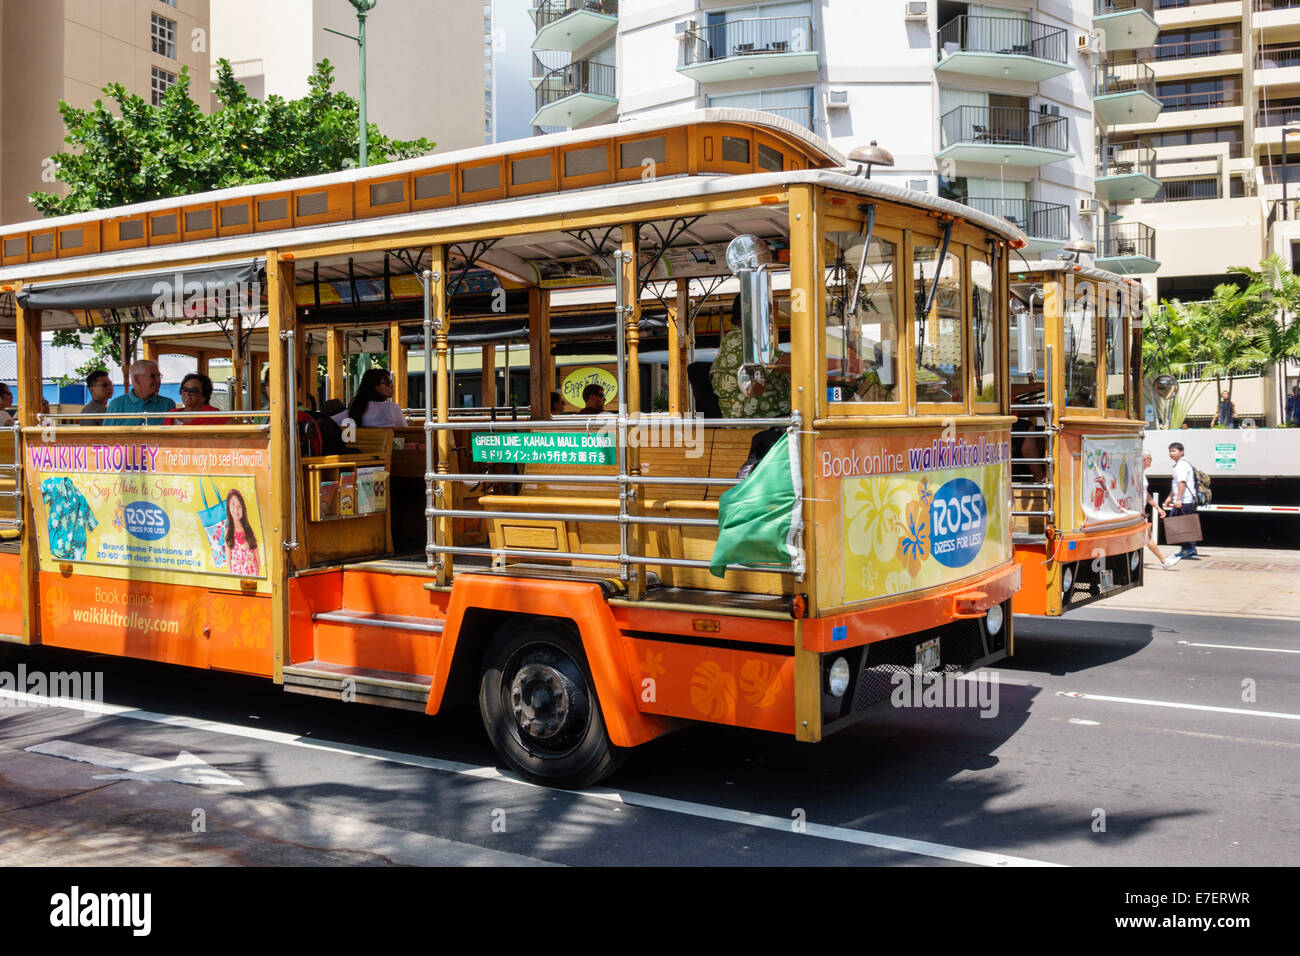 Waikiki Beach Honolulu Hawaii Hawaiian Oahu Kalakaua Avenue Waikiki Trolley transportation - Stock Image